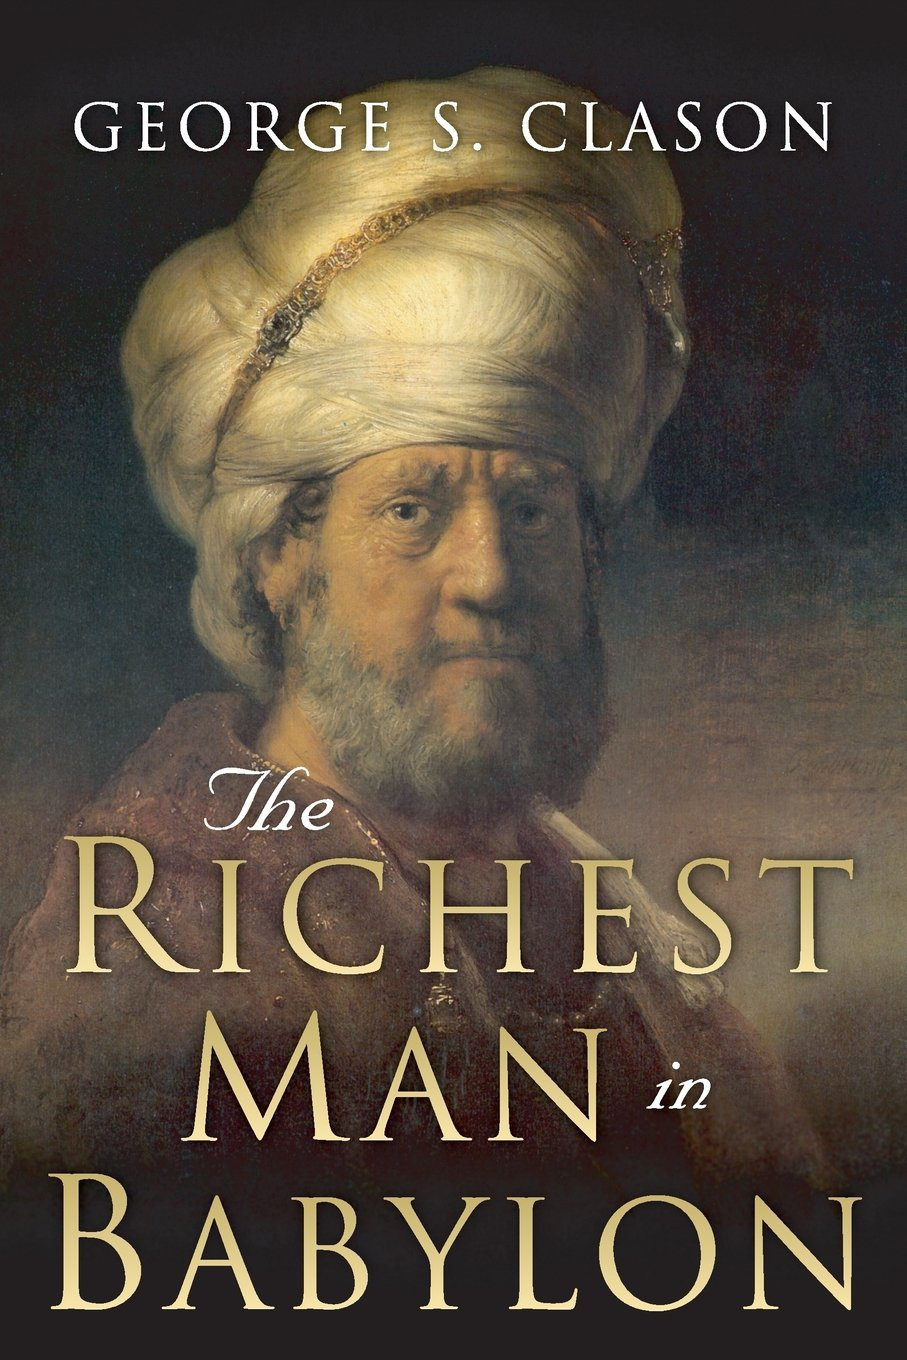 George S. Clason The Richest Man in Babylon